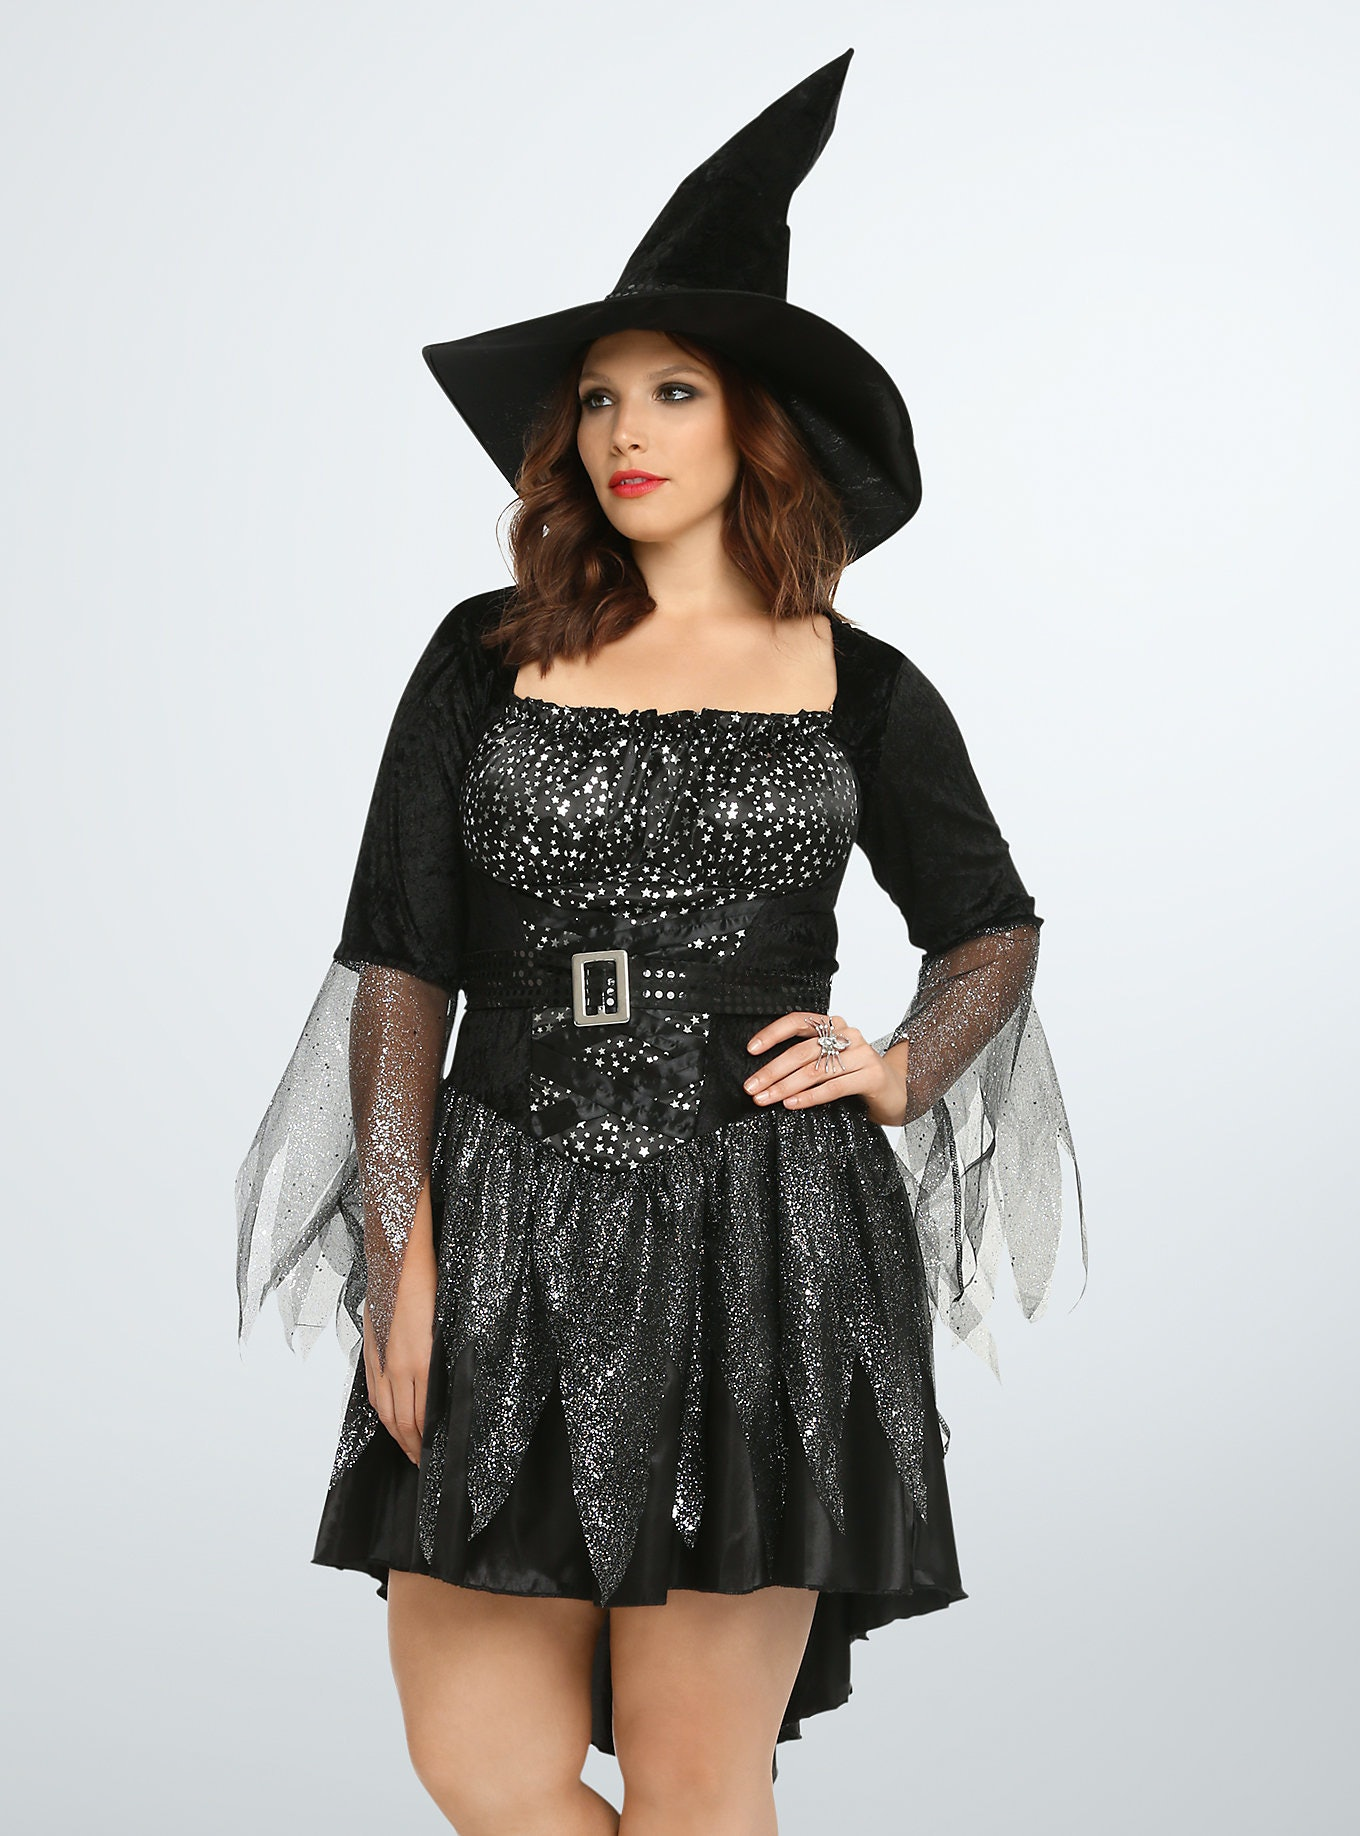 ed84fa975d4 15 Plus Size Halloween Costumes That Are Ready To Party